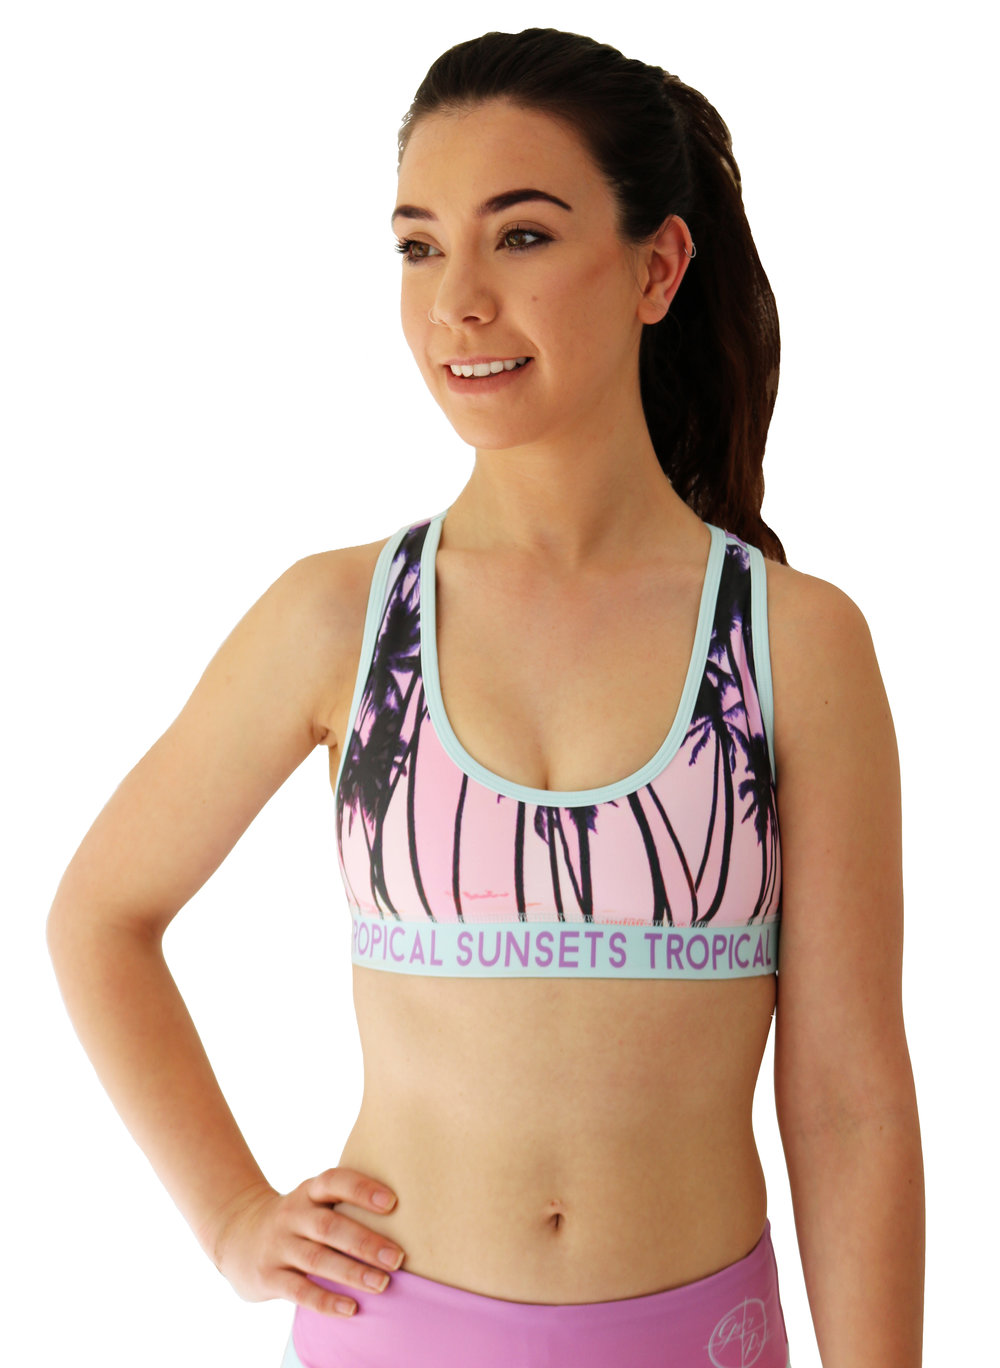 GP TROPICAL PALM SUNSETS SPORTS BRA FRONT copy.jpg